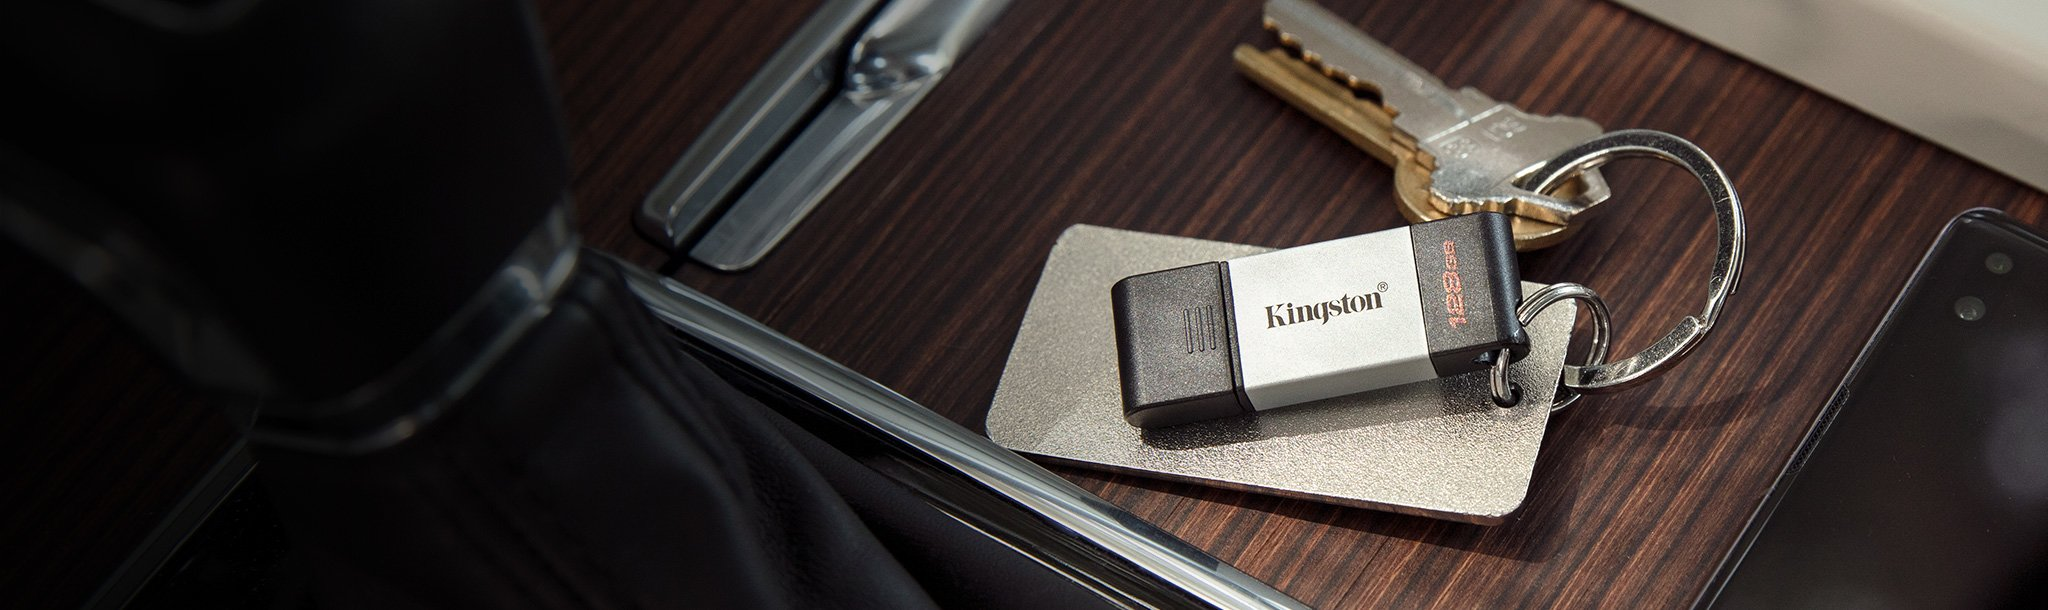 #KINGSTON FLASH 32GB USB-C 3.2 Gen 1 DT80/32GB